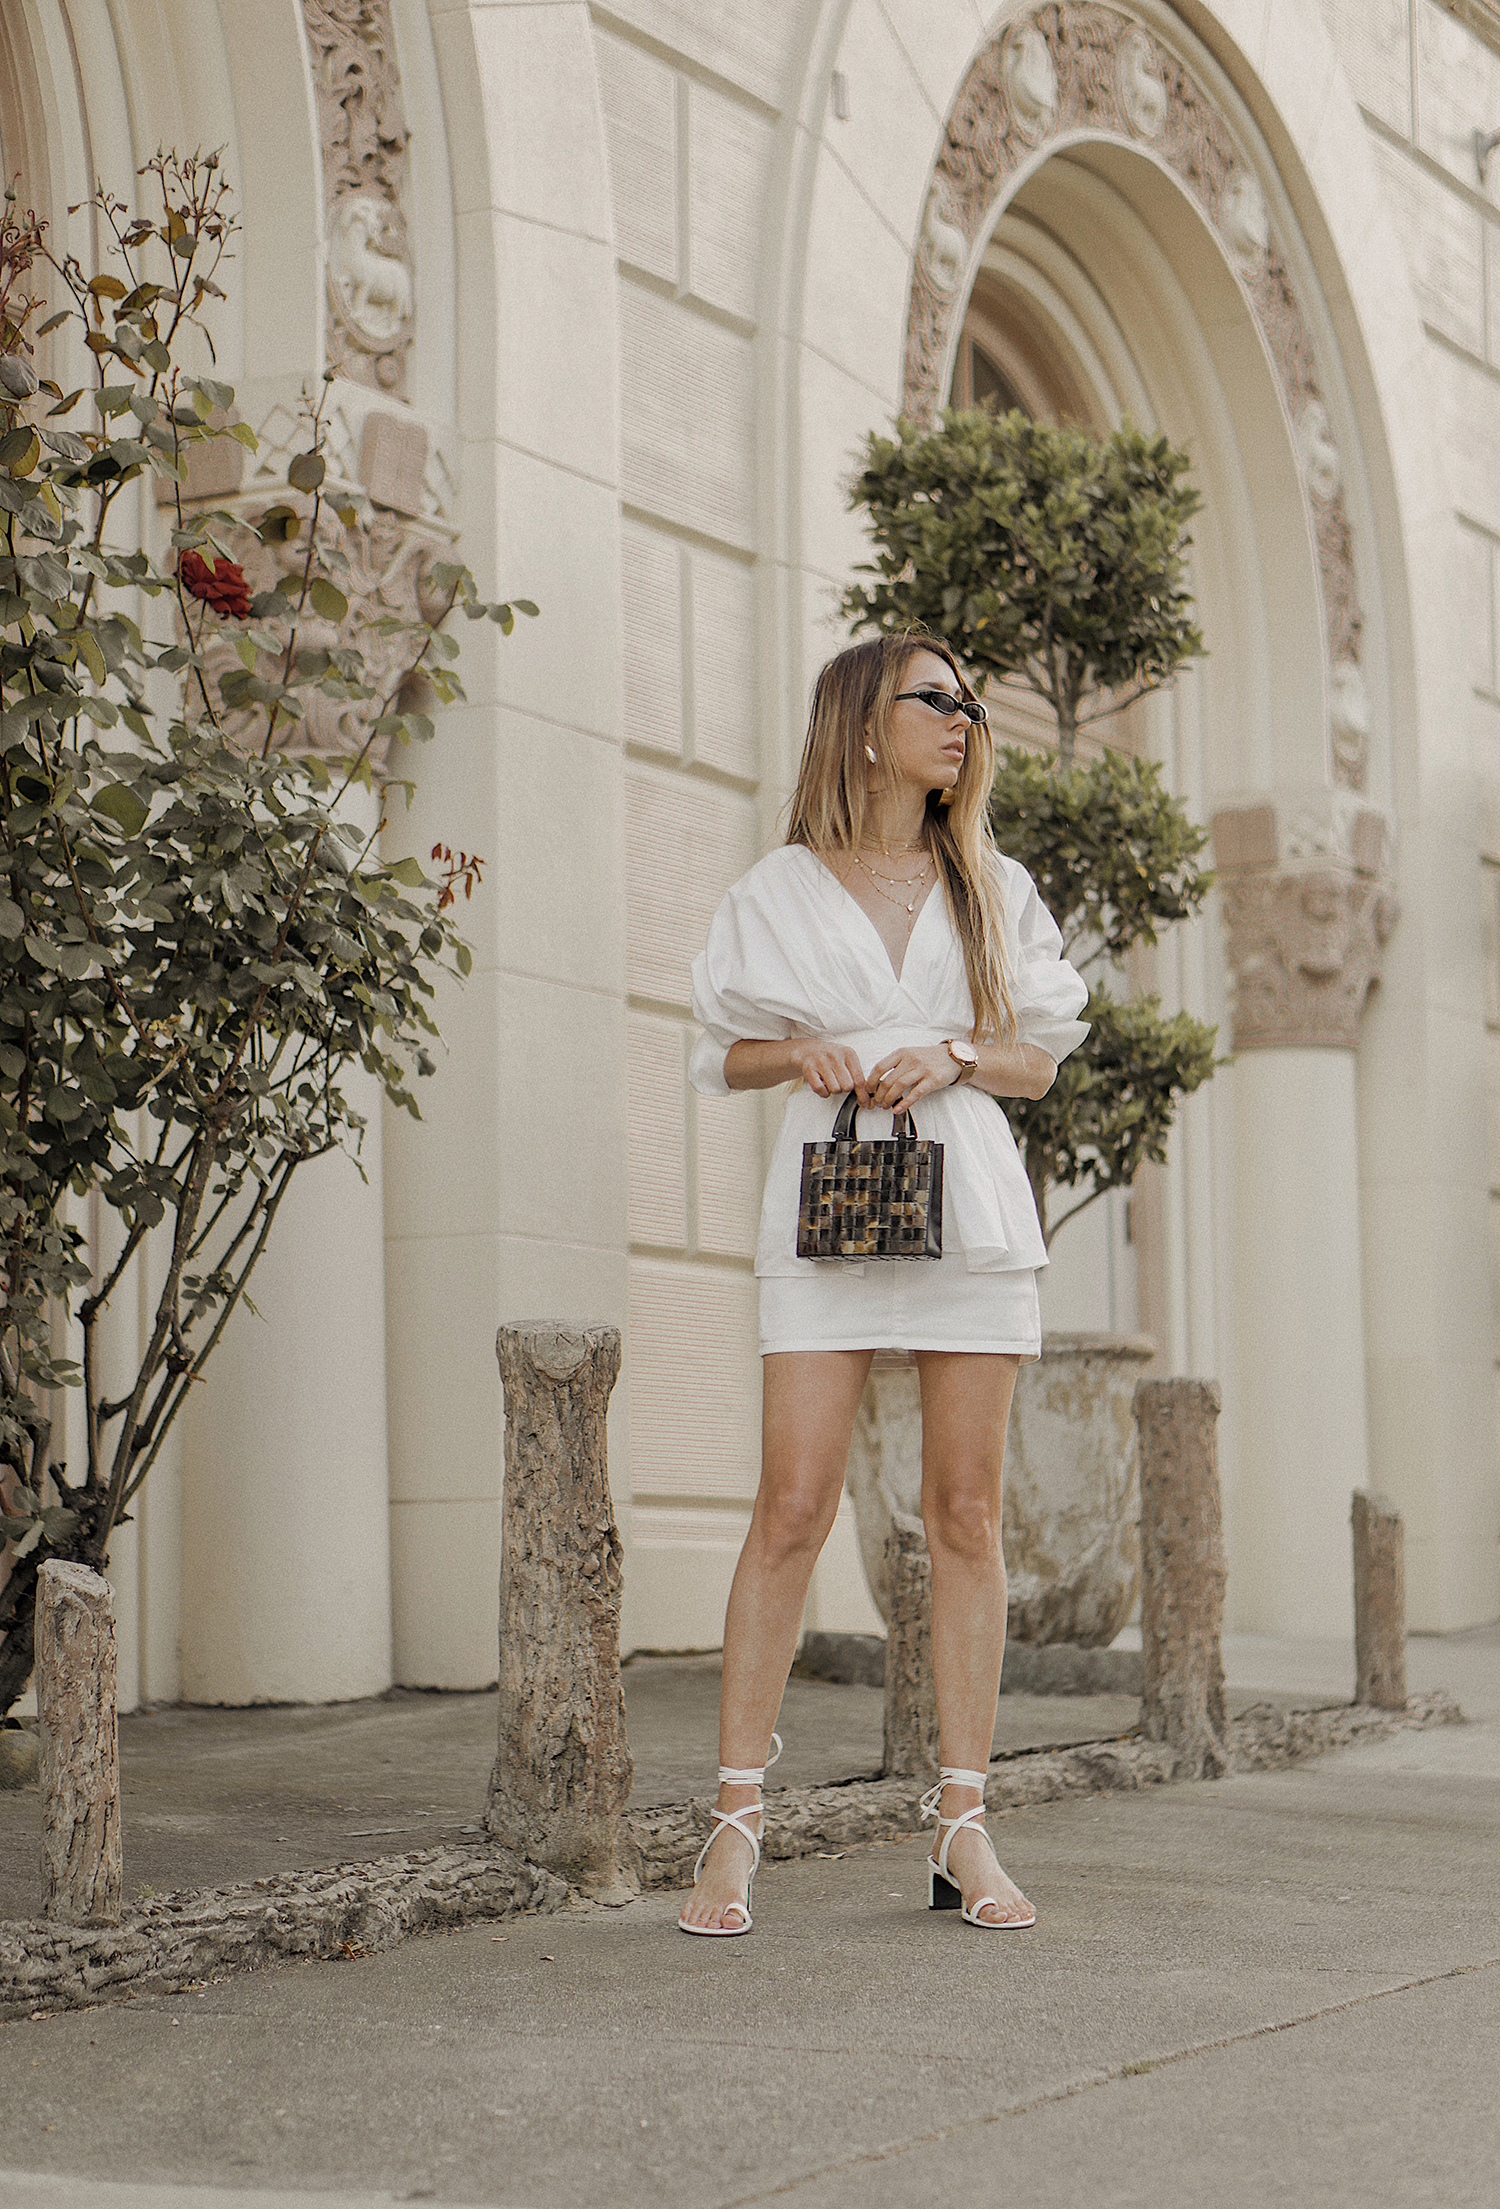 white_outfit_look_ideas_street_style_total_white_Céline_inspired_Ring_Toe_Lace_Up_Sandals_summer_san_francisco_fashion_blogger_bay_area_the_white_ocean_lena_juice_13